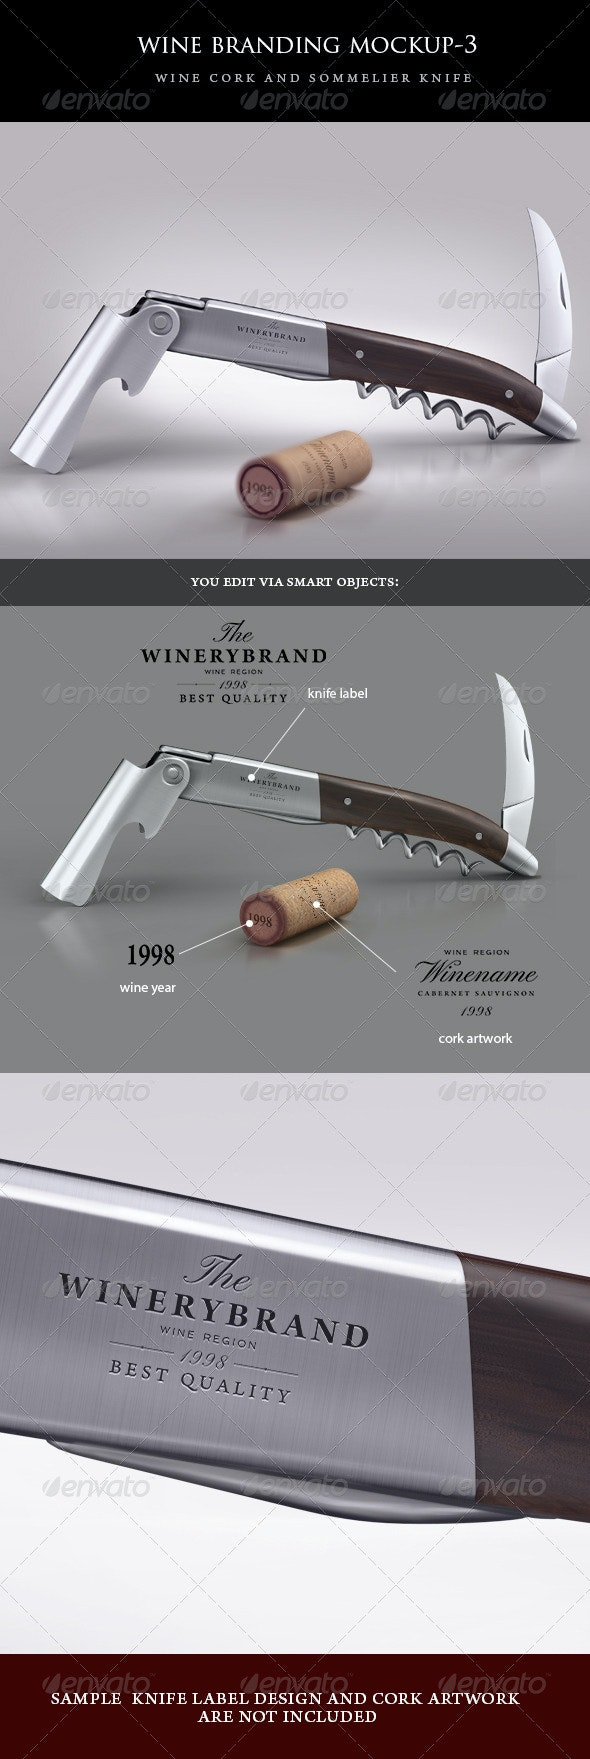 sommelier knife and wine cork mock-up - Food and Drink Packaging